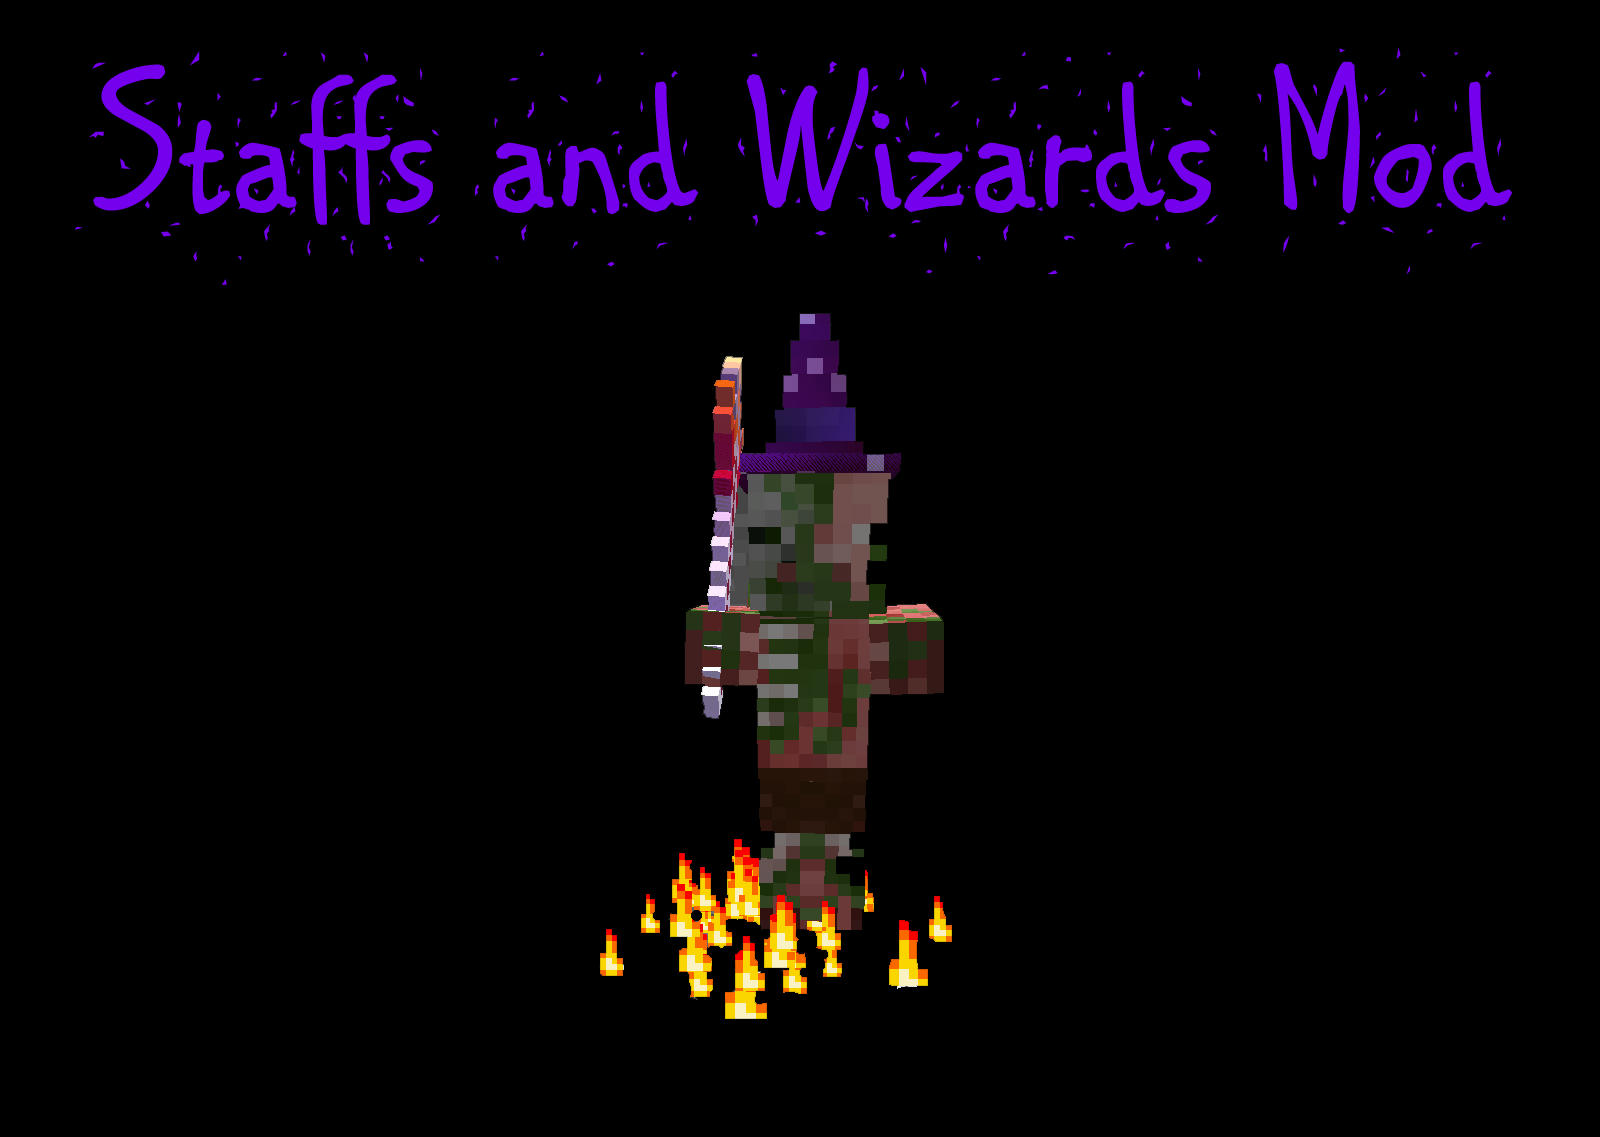 the staffs mod adds in wizards and tons of different staffs with different powers in your minecraft world